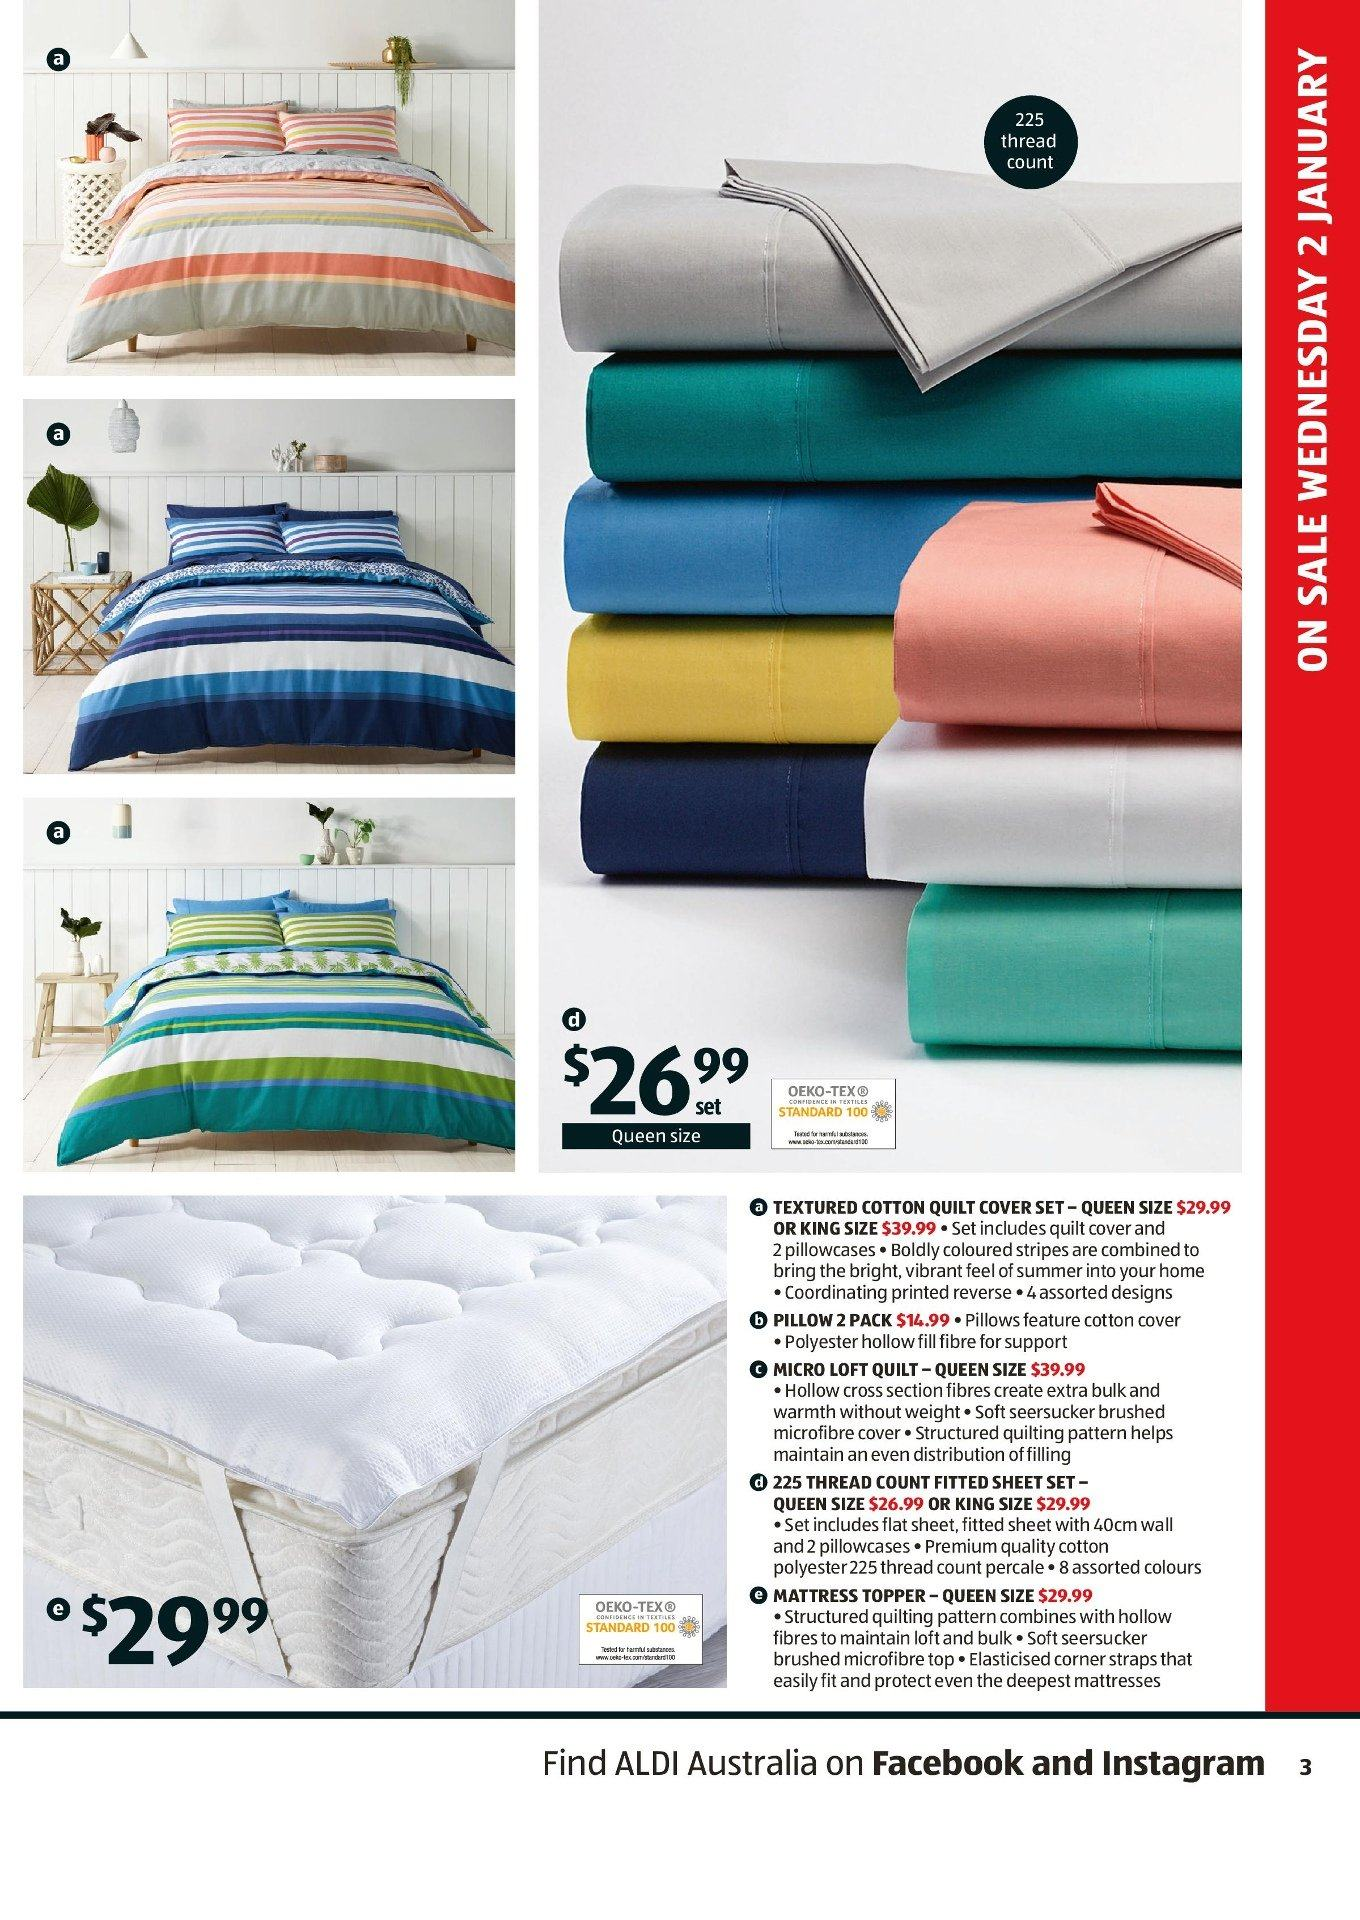 ALDI Catalogue - 2.1.2019 - 8.1.2019 - Sales products - cotton, cover, mattress, sheet, sheet set, top, topper, pillow, pillowcases, quilt, microfibre cover. Page 3.